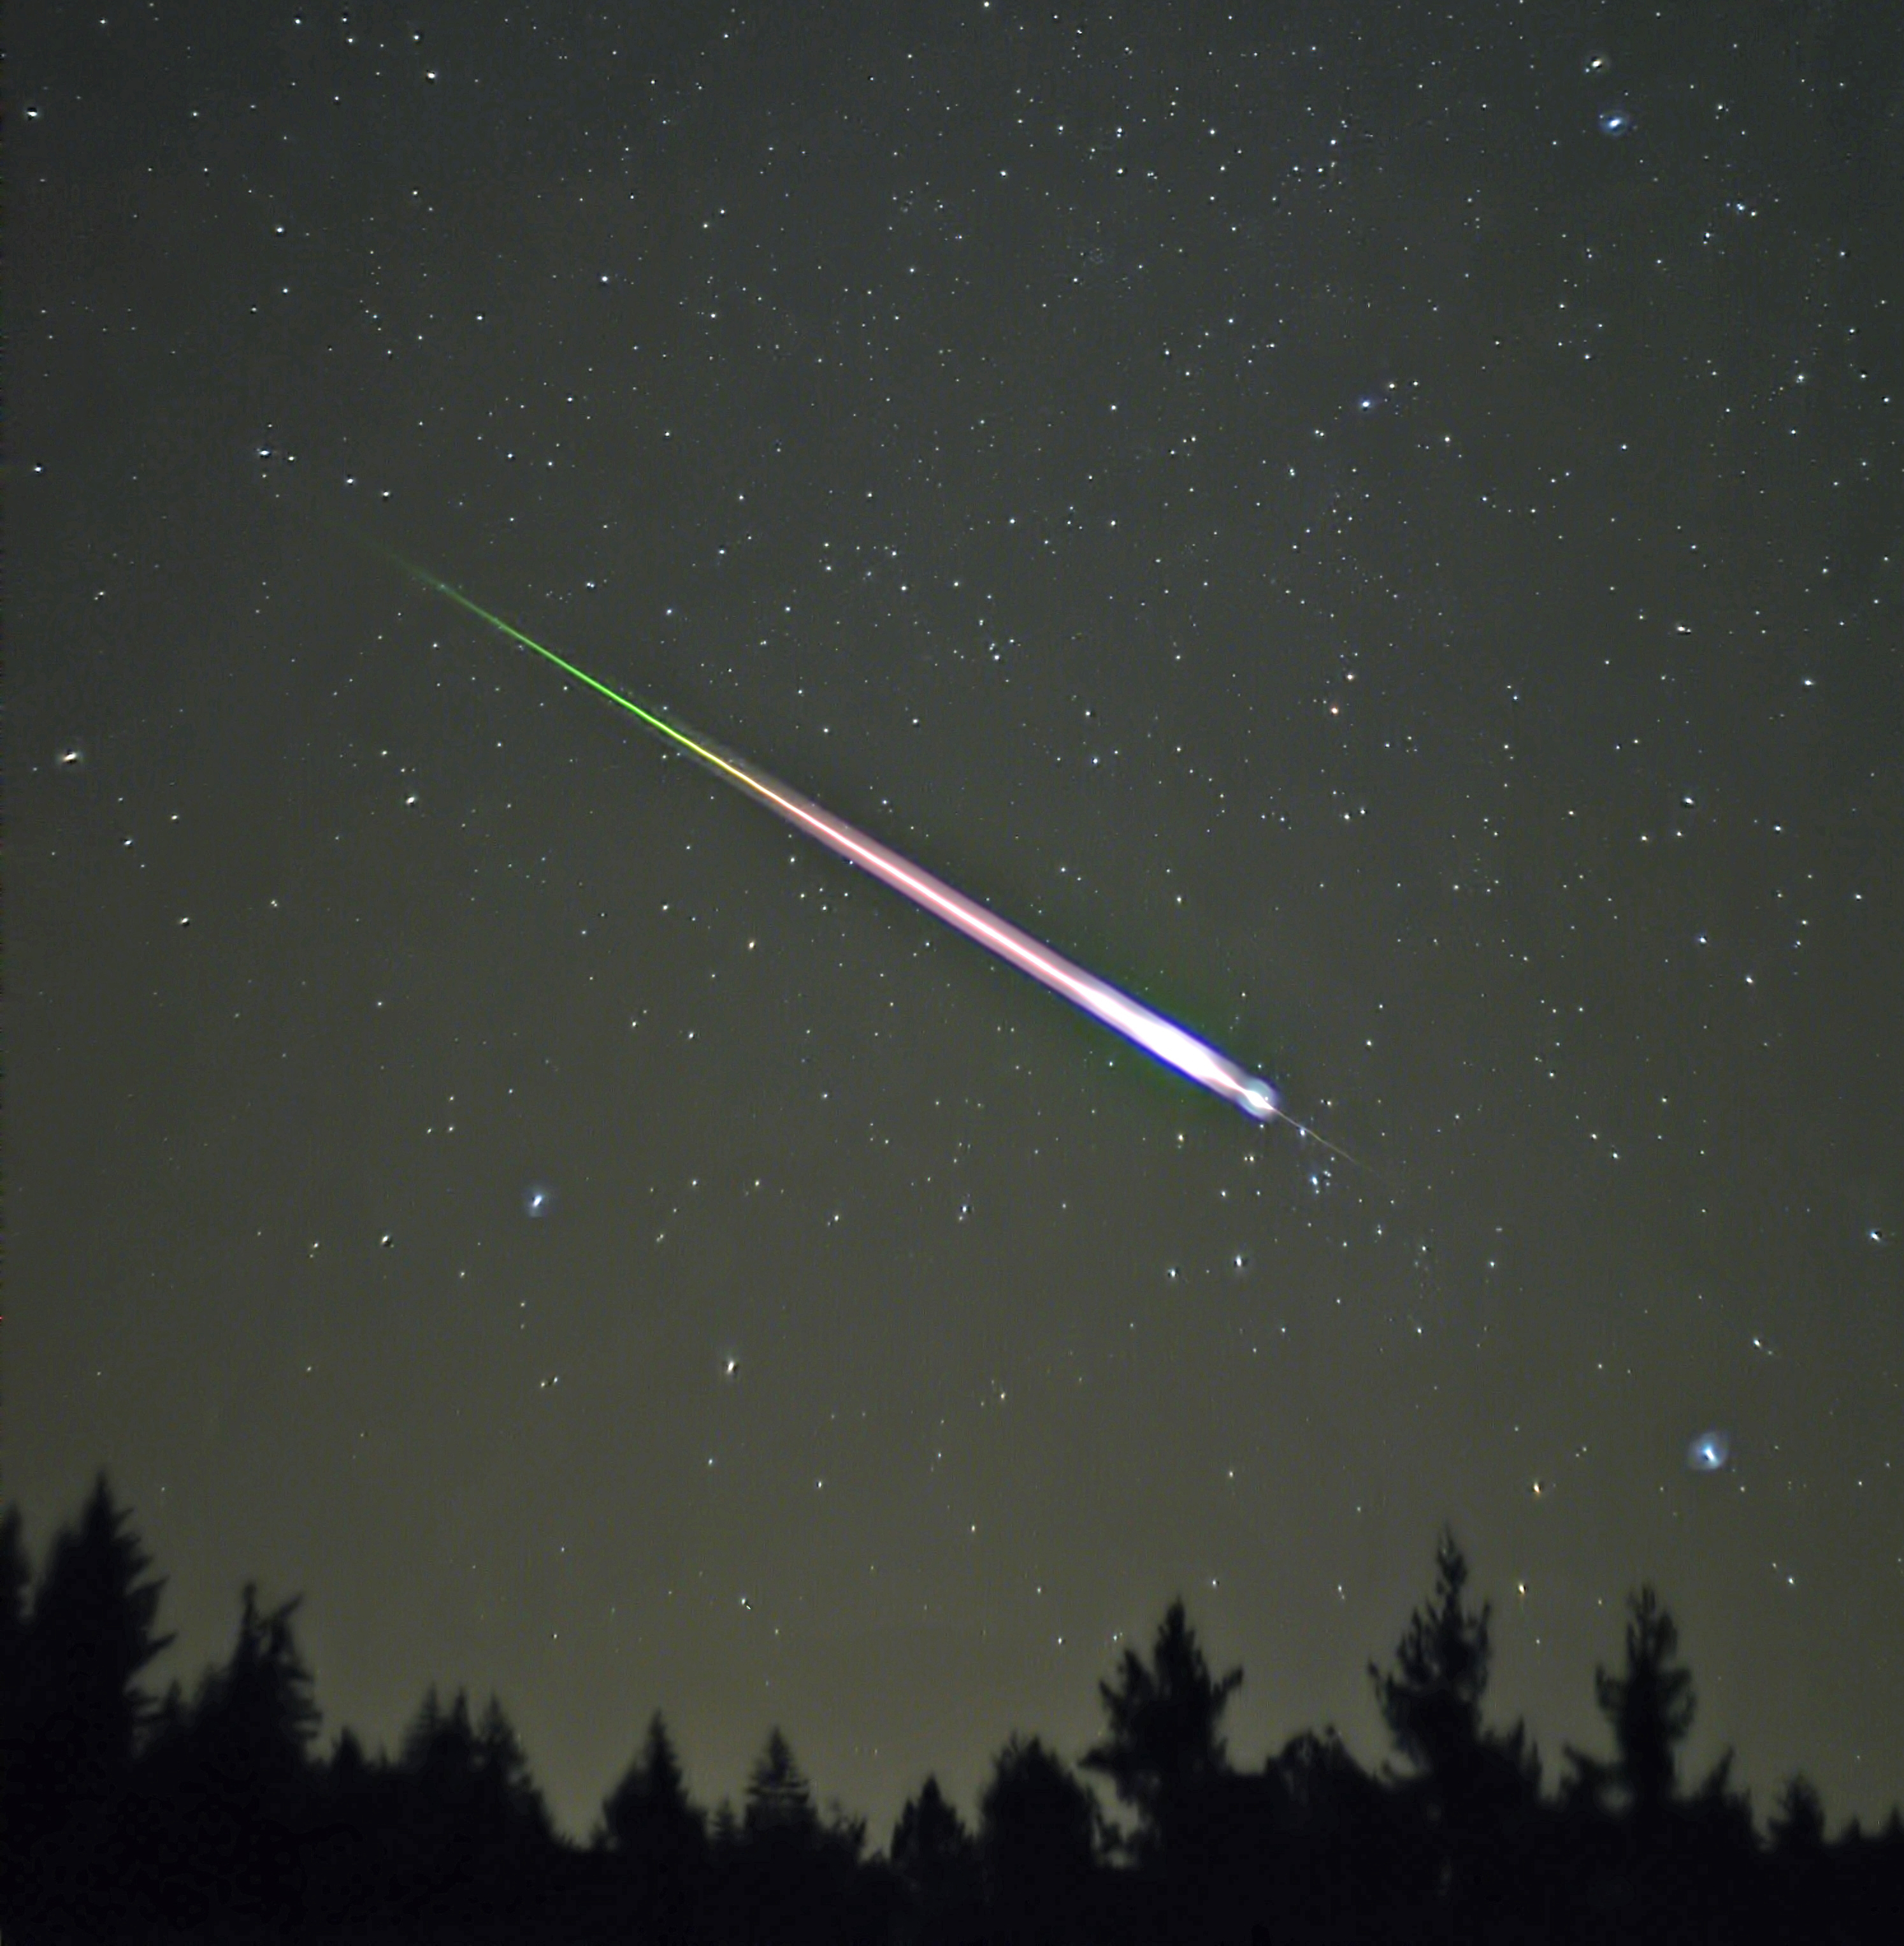 Meteoroid - Wikipedia, the free encyclopedia